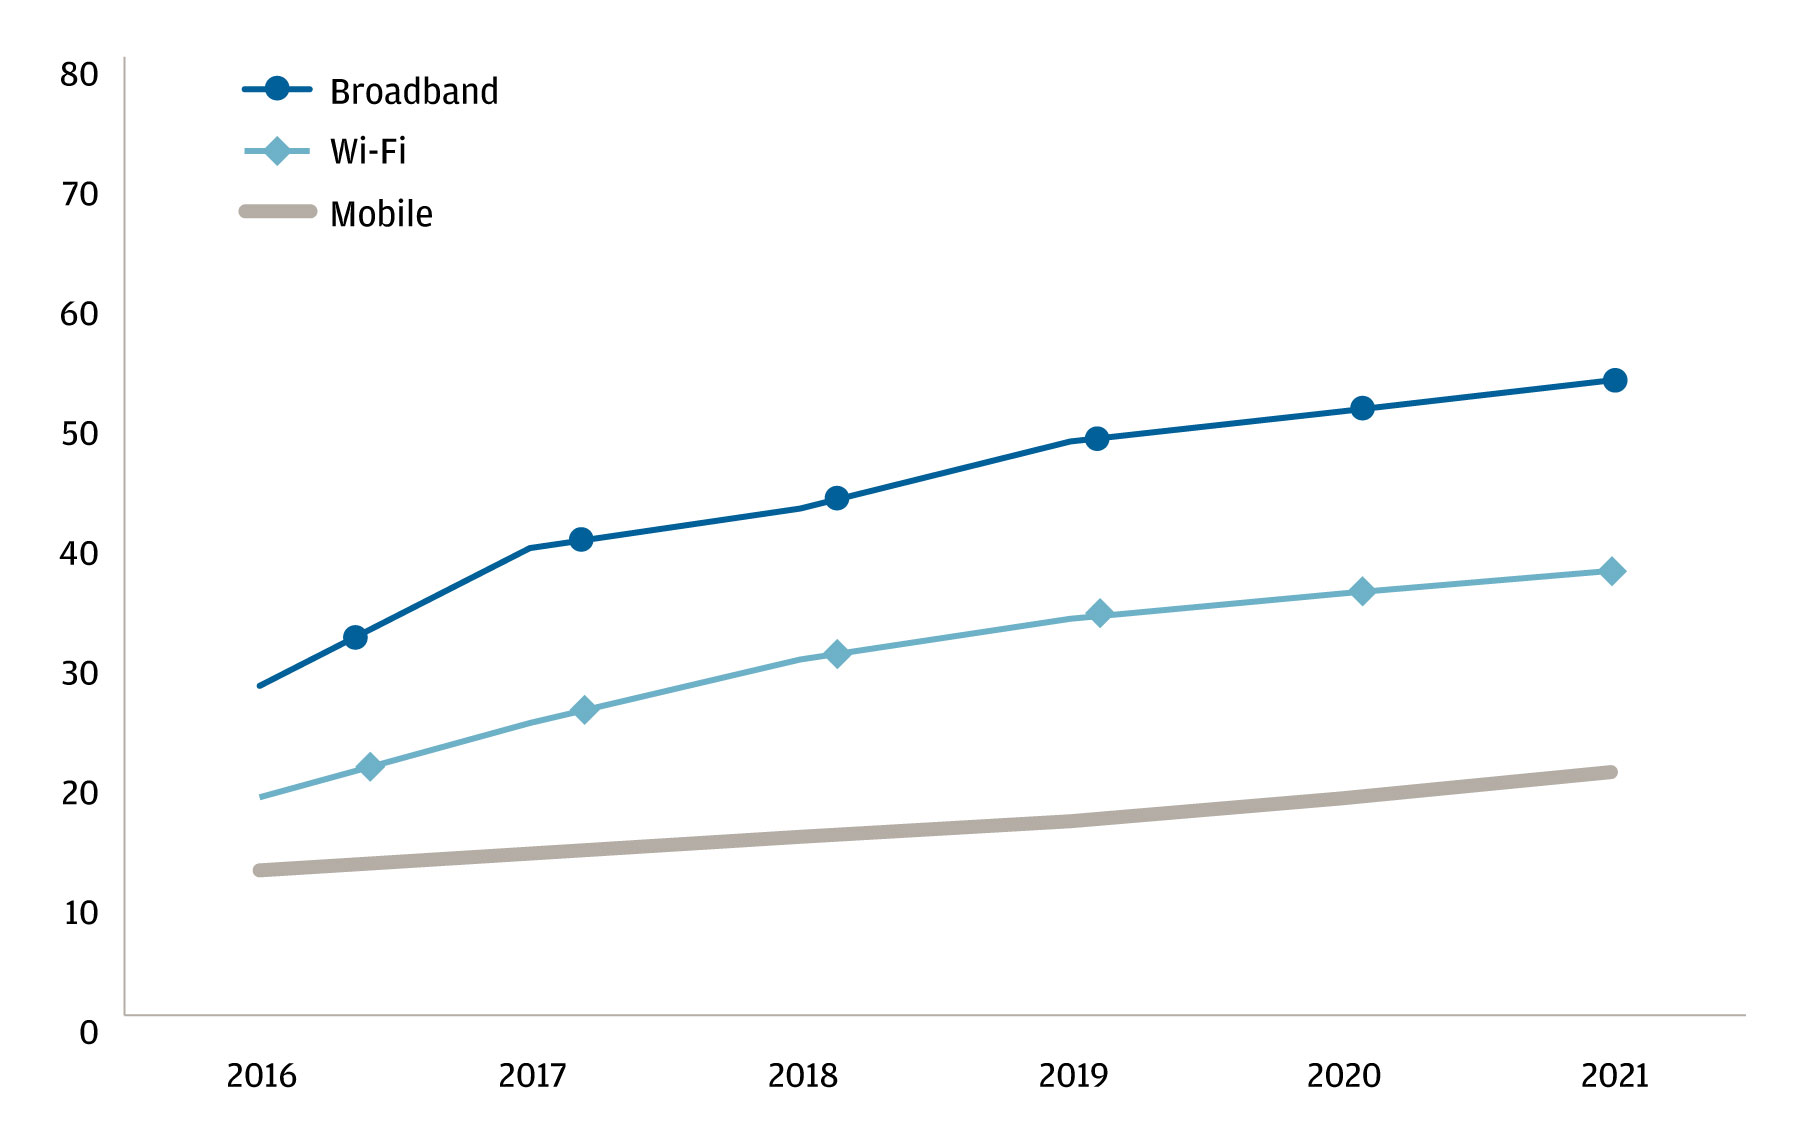 Line chart showing the average speeds achieved and estimated in megabytes per second from 2016 through 2021 for broadband, mobile and Wi-Fi.